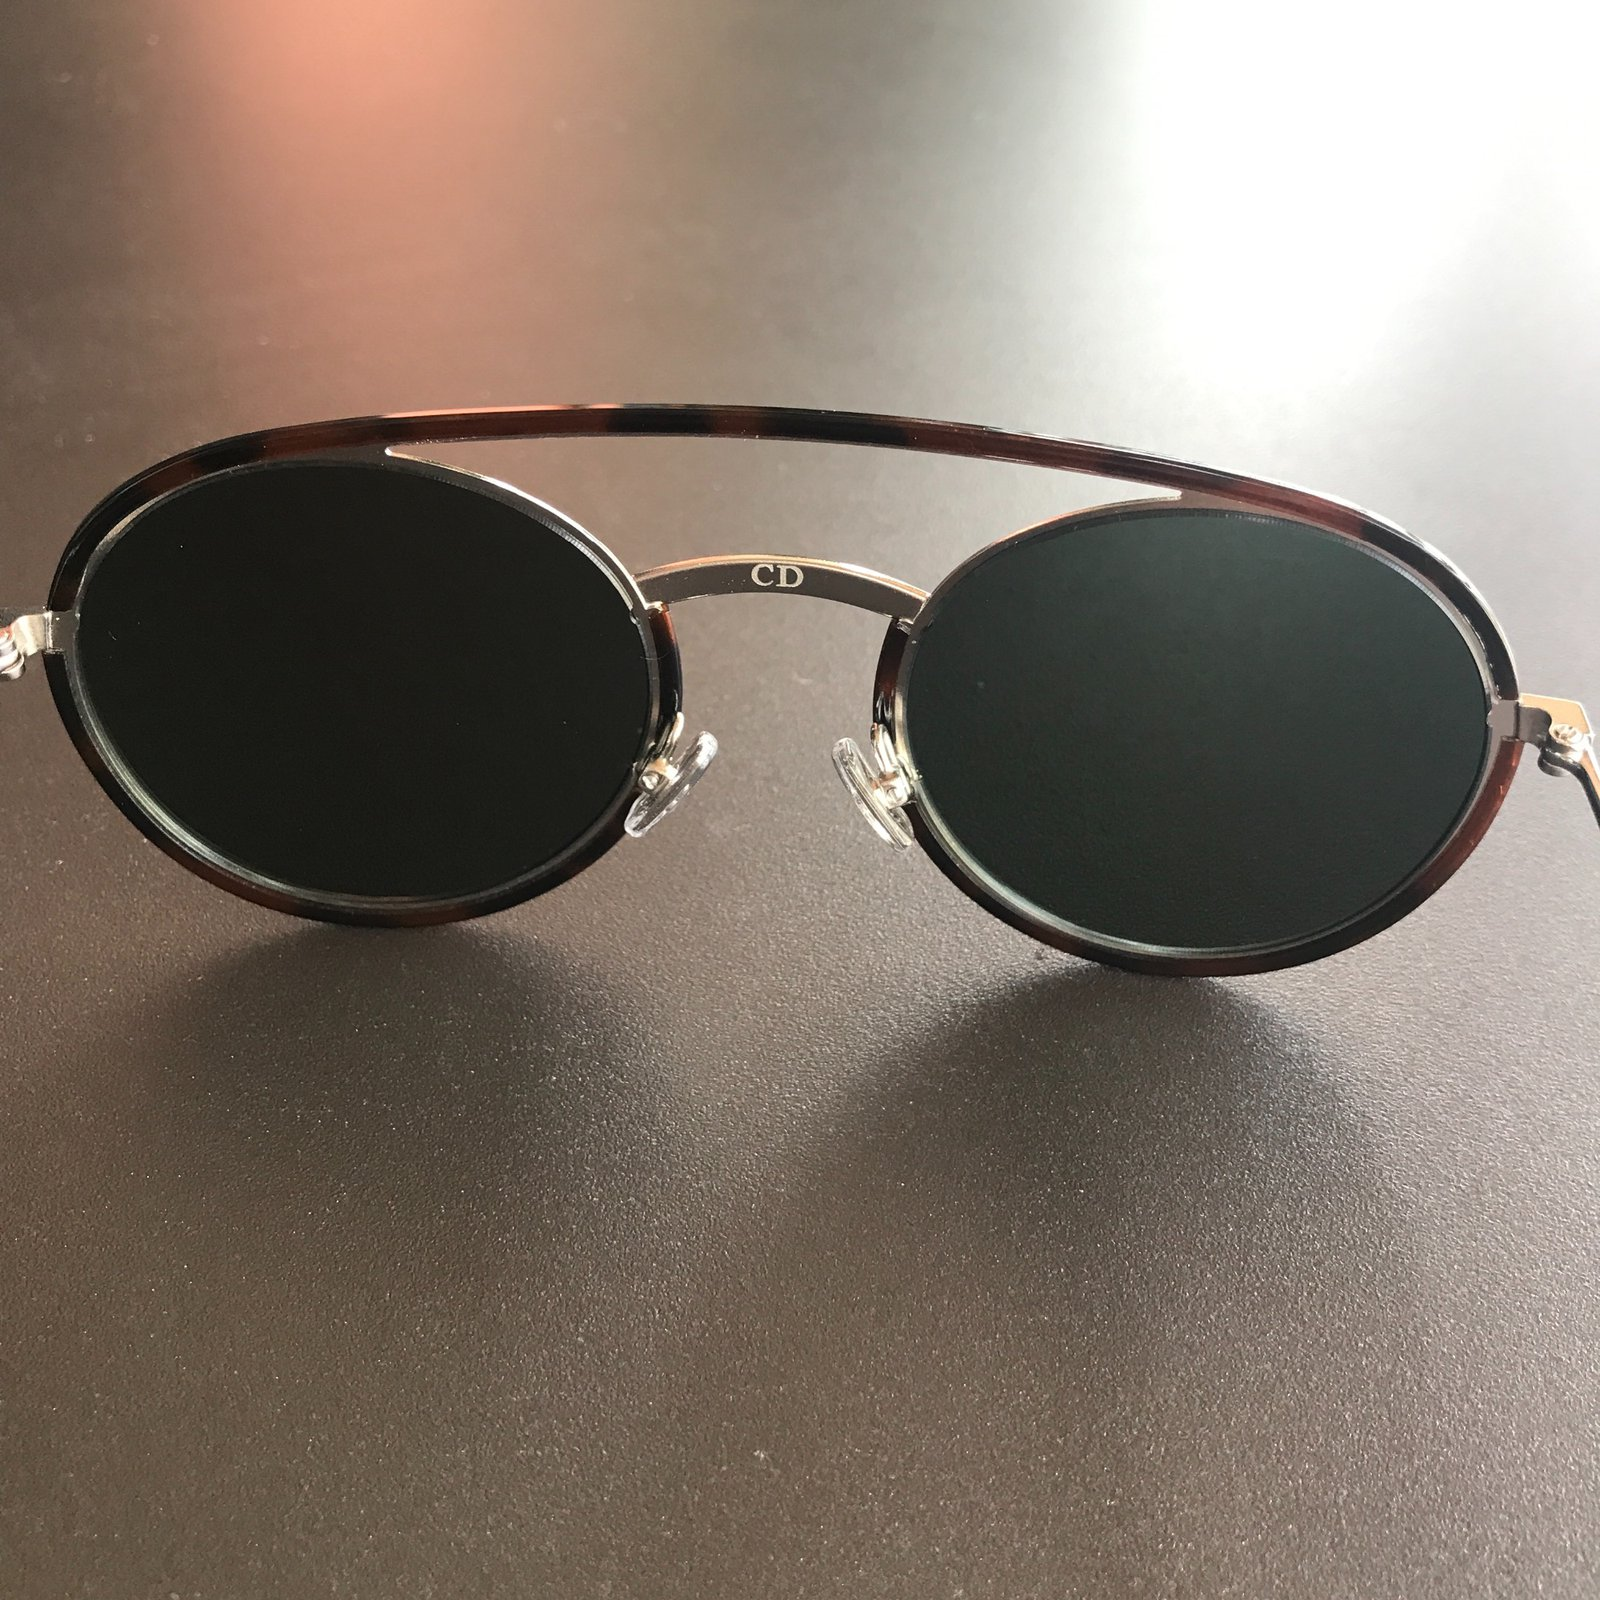 0df58811be Facebook · Pin This. Christian Dior Dior synthesis sunglasses Sunglasses  Metal Brown ...